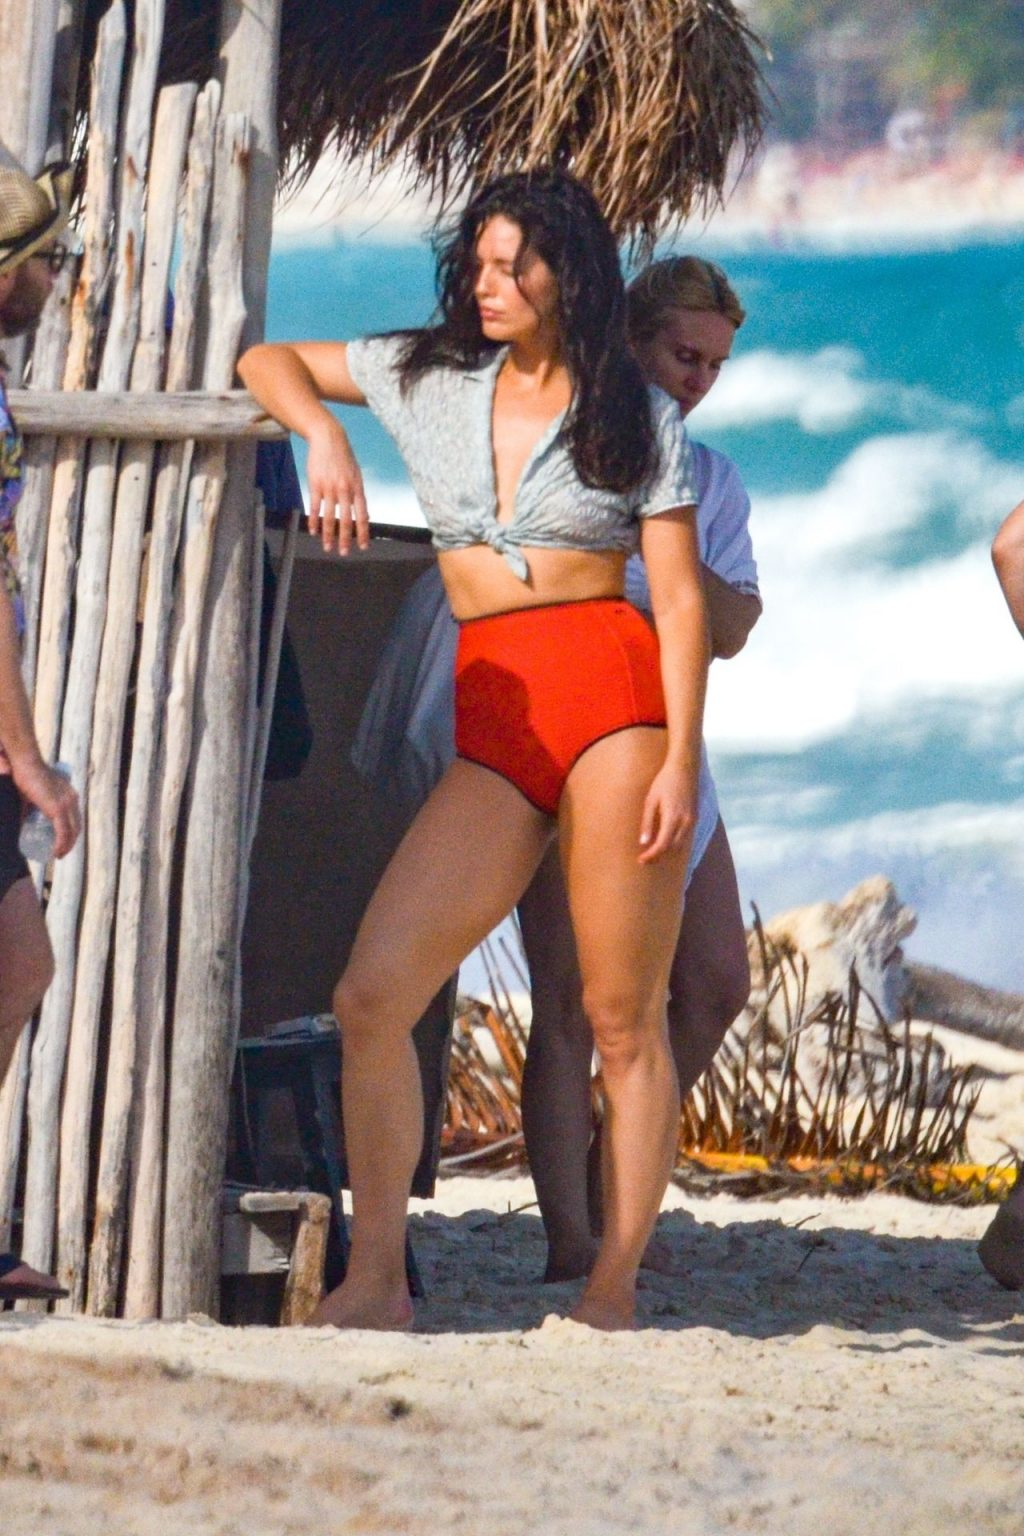 Emily DiDonato Goes Topless for a Beachside Shoot in Tulum (55 Photos)